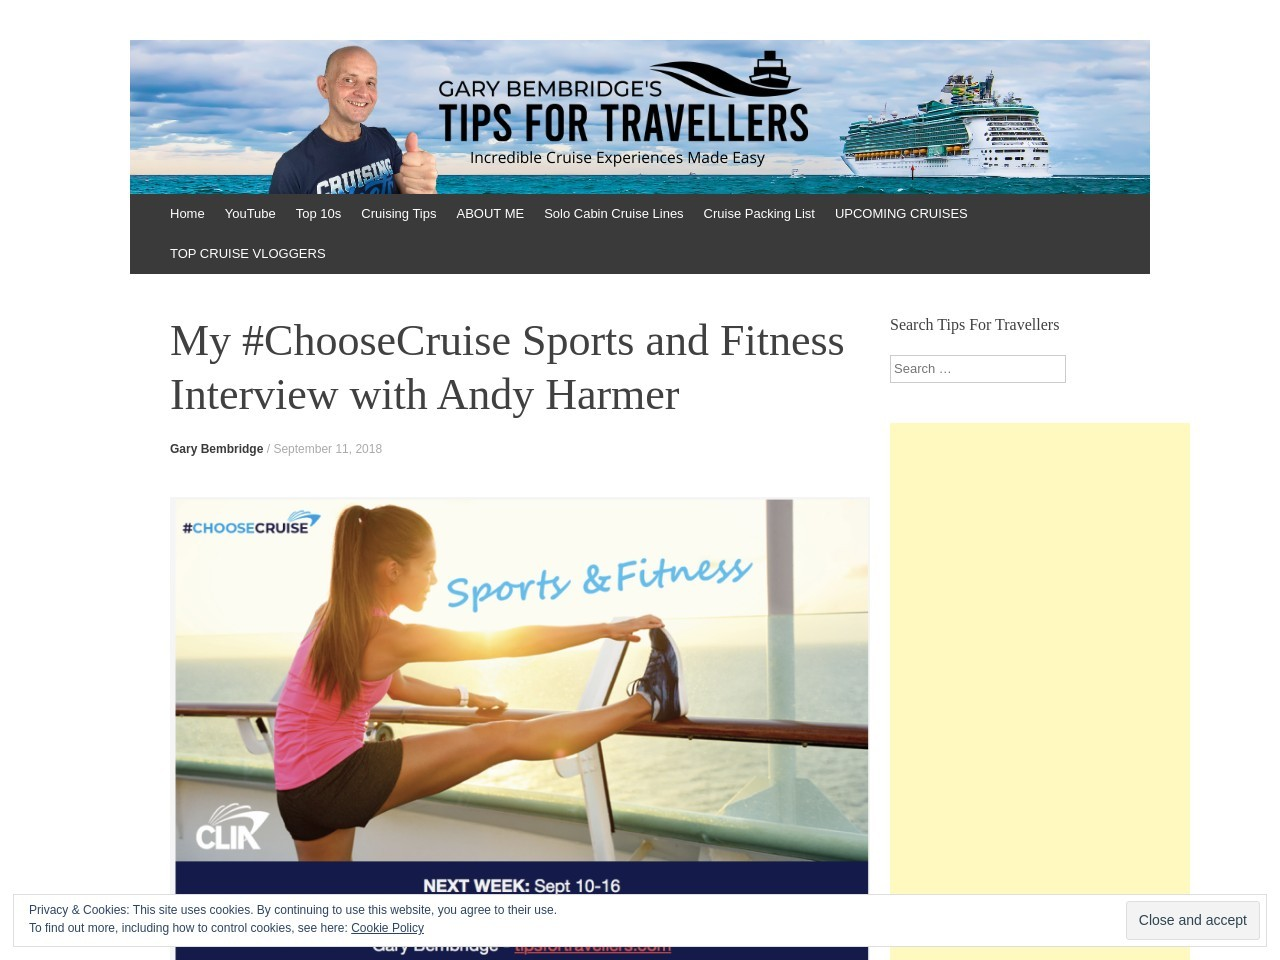 My #ChooseCruise Sports and Fitness Interview with Andy Harmer